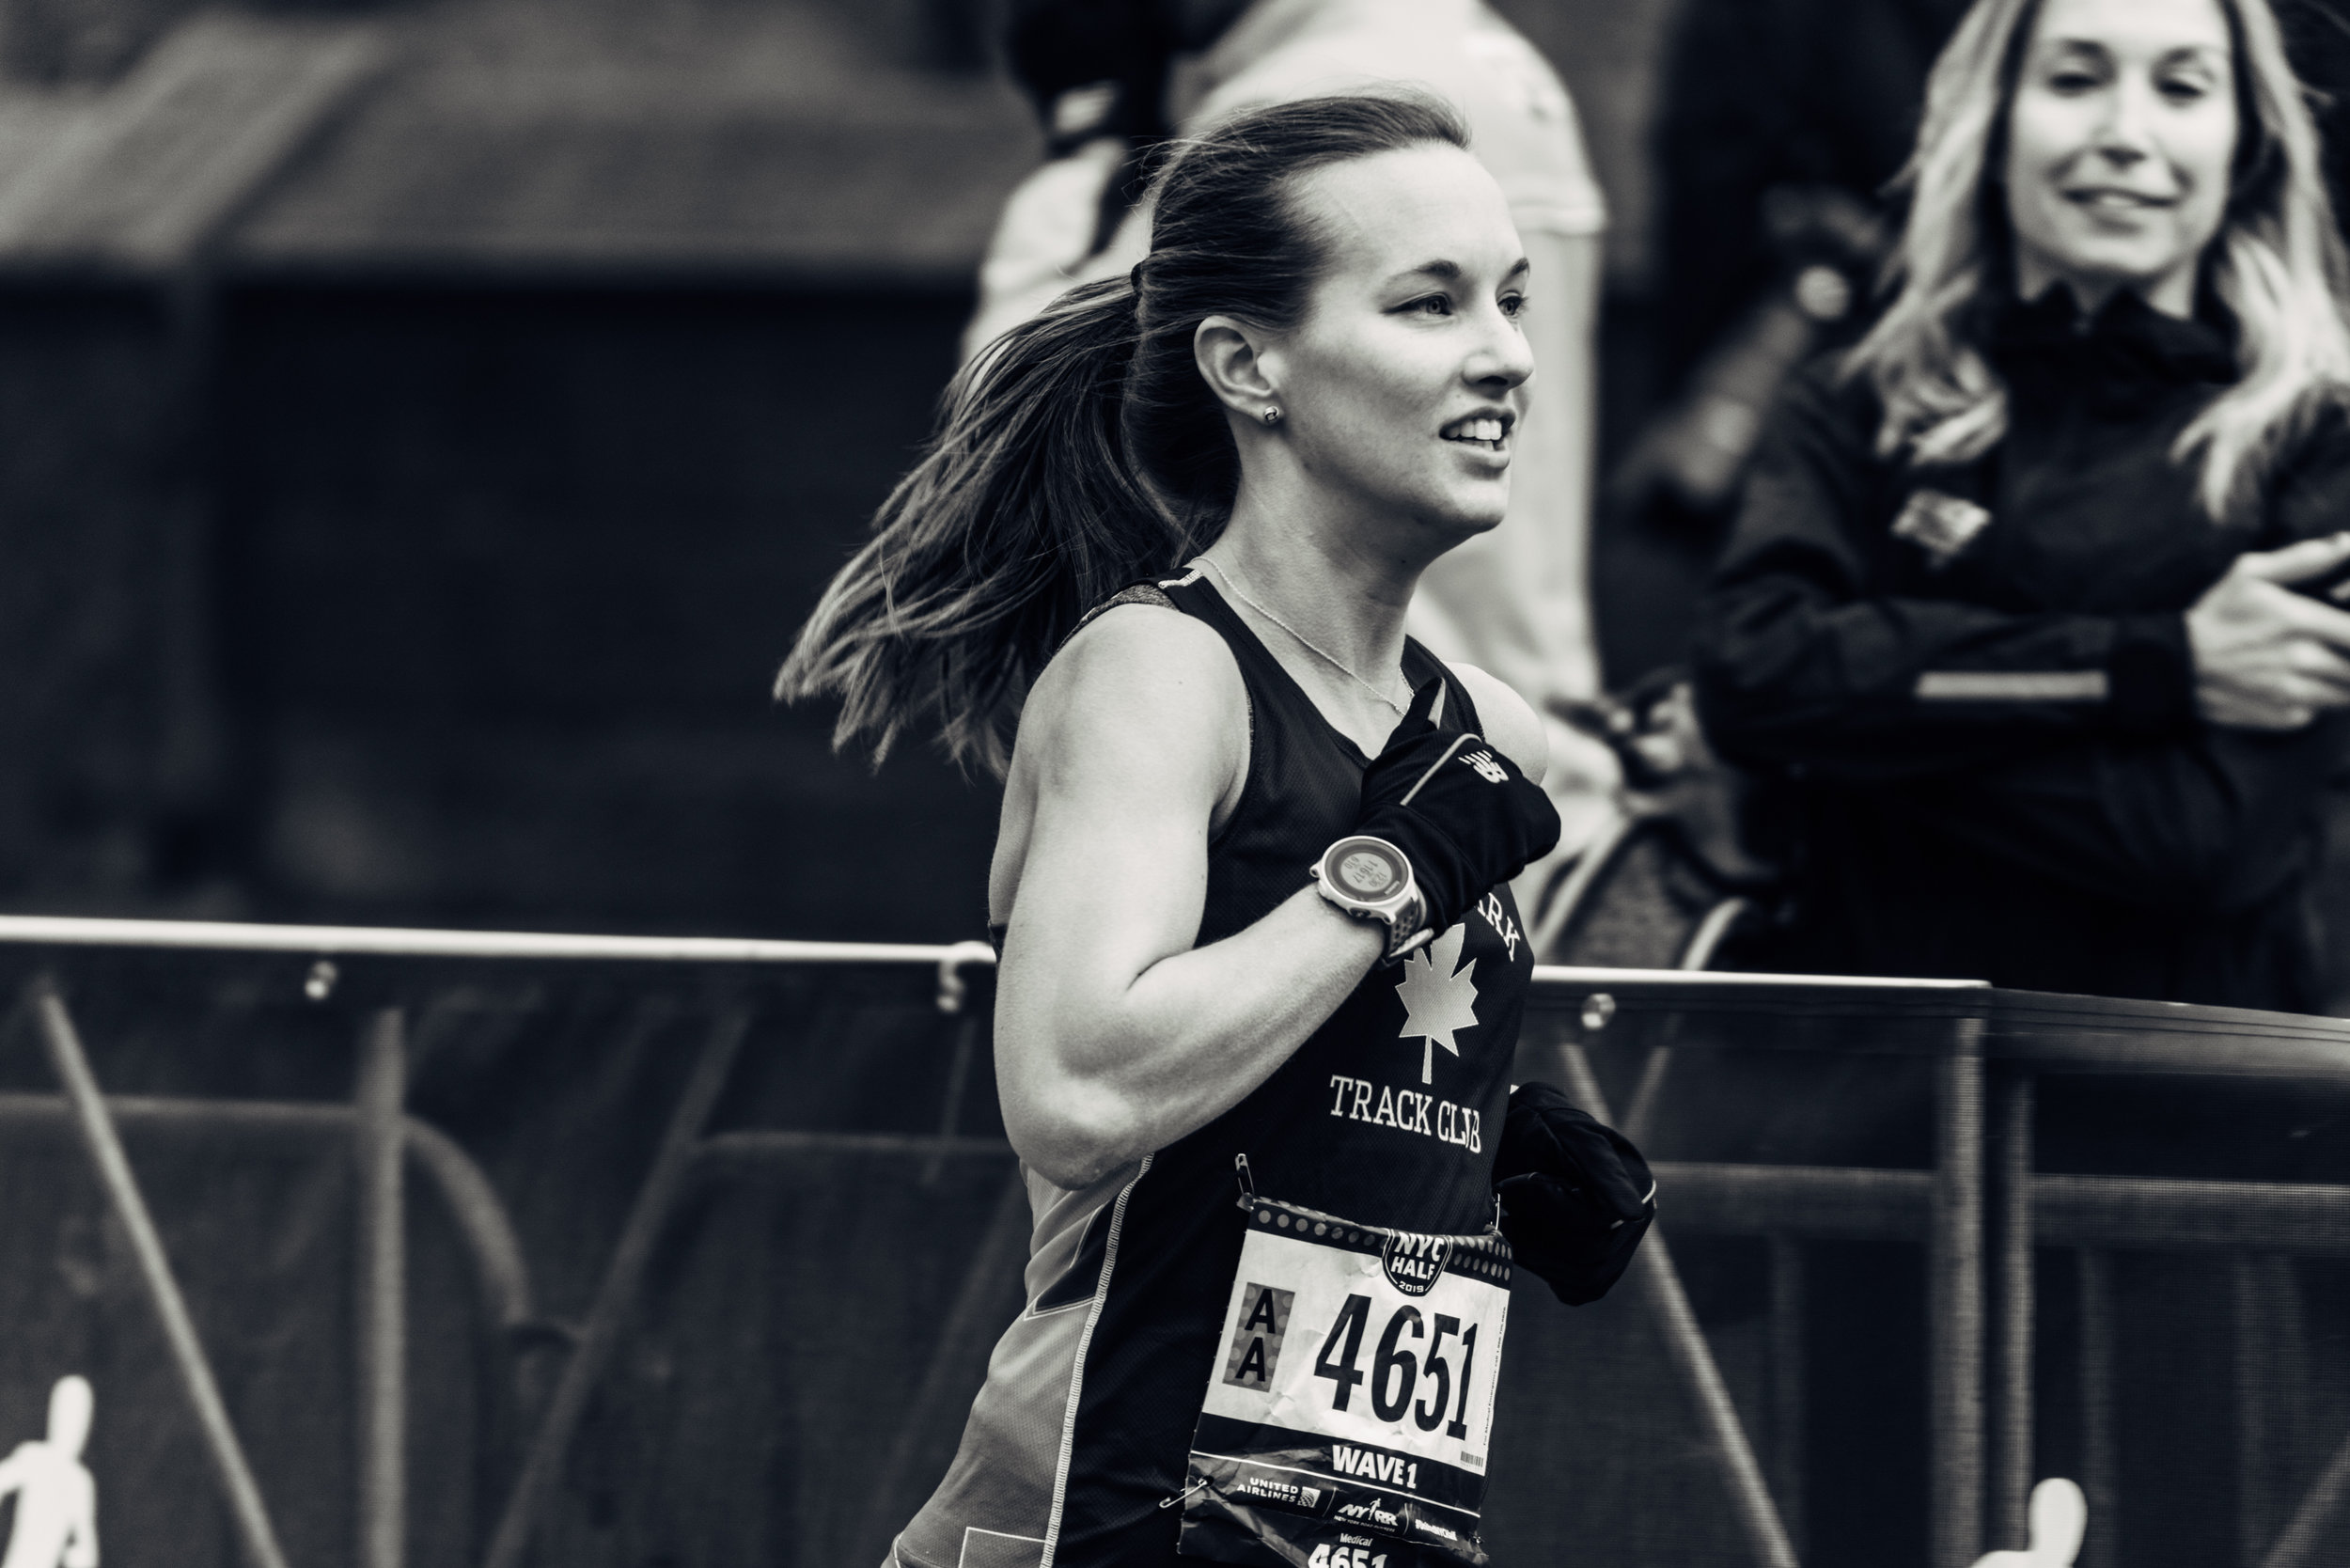 Photo Rhetoric - To Be Determined - United NYC Half Marathon-3028.jpg